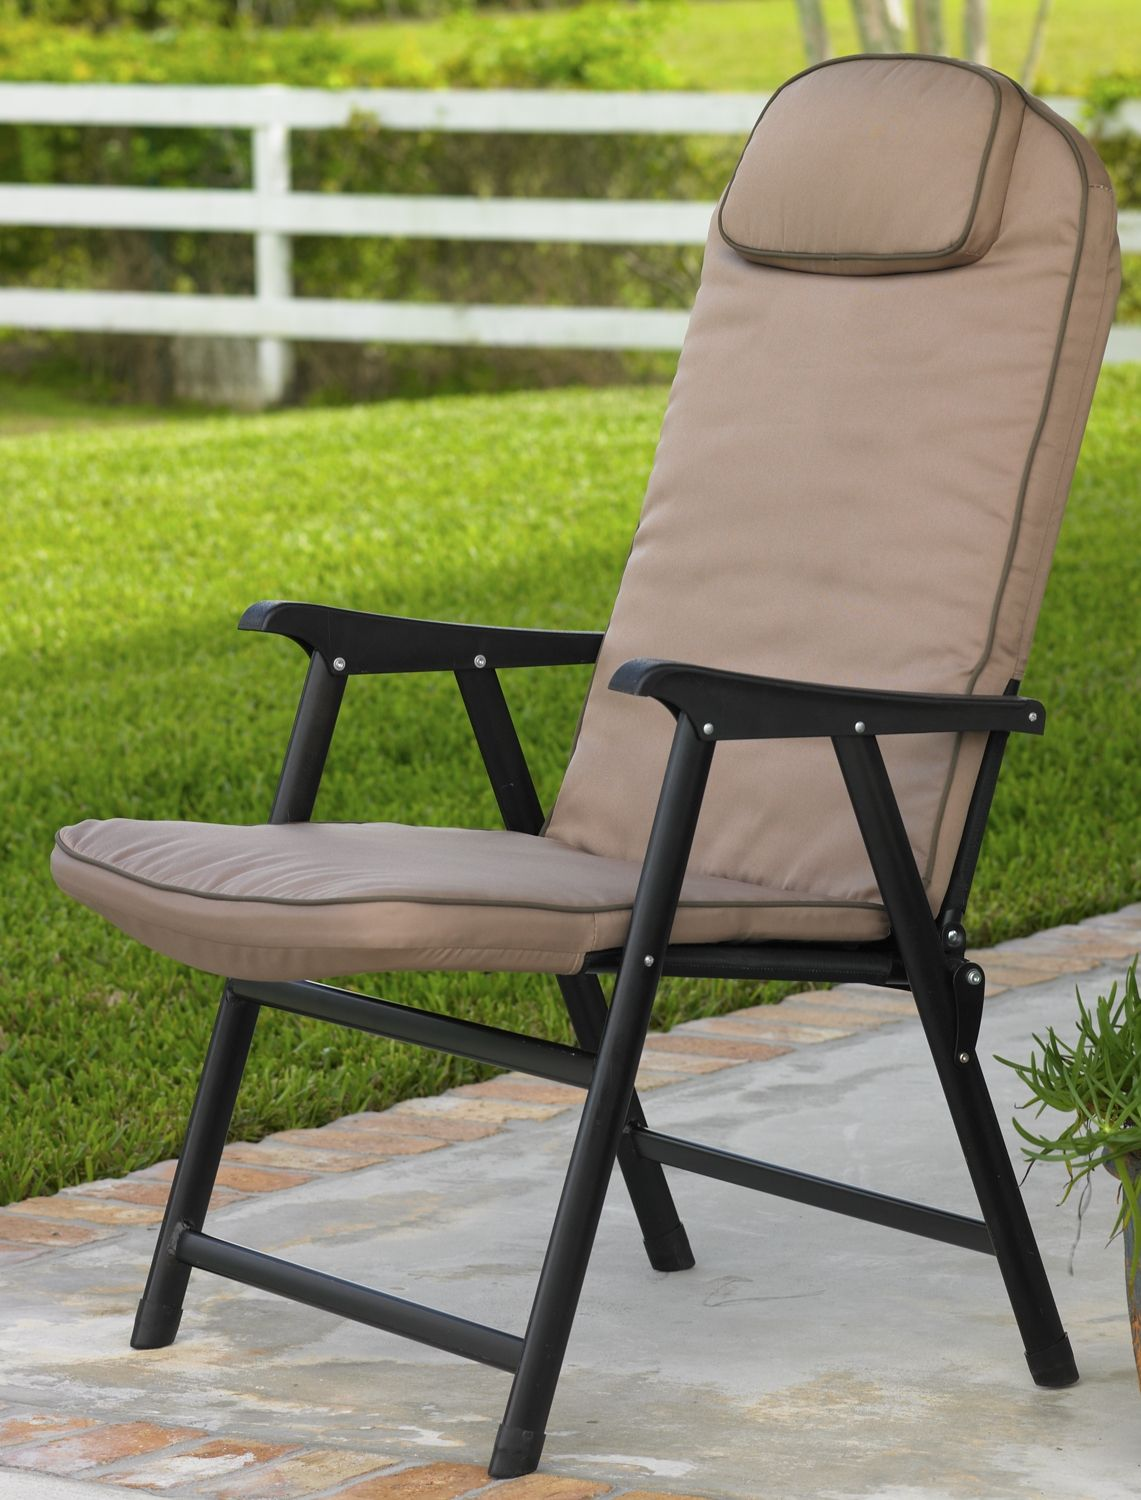 ExtraWide Folding Padded Outdoor Chair Outdoor folding